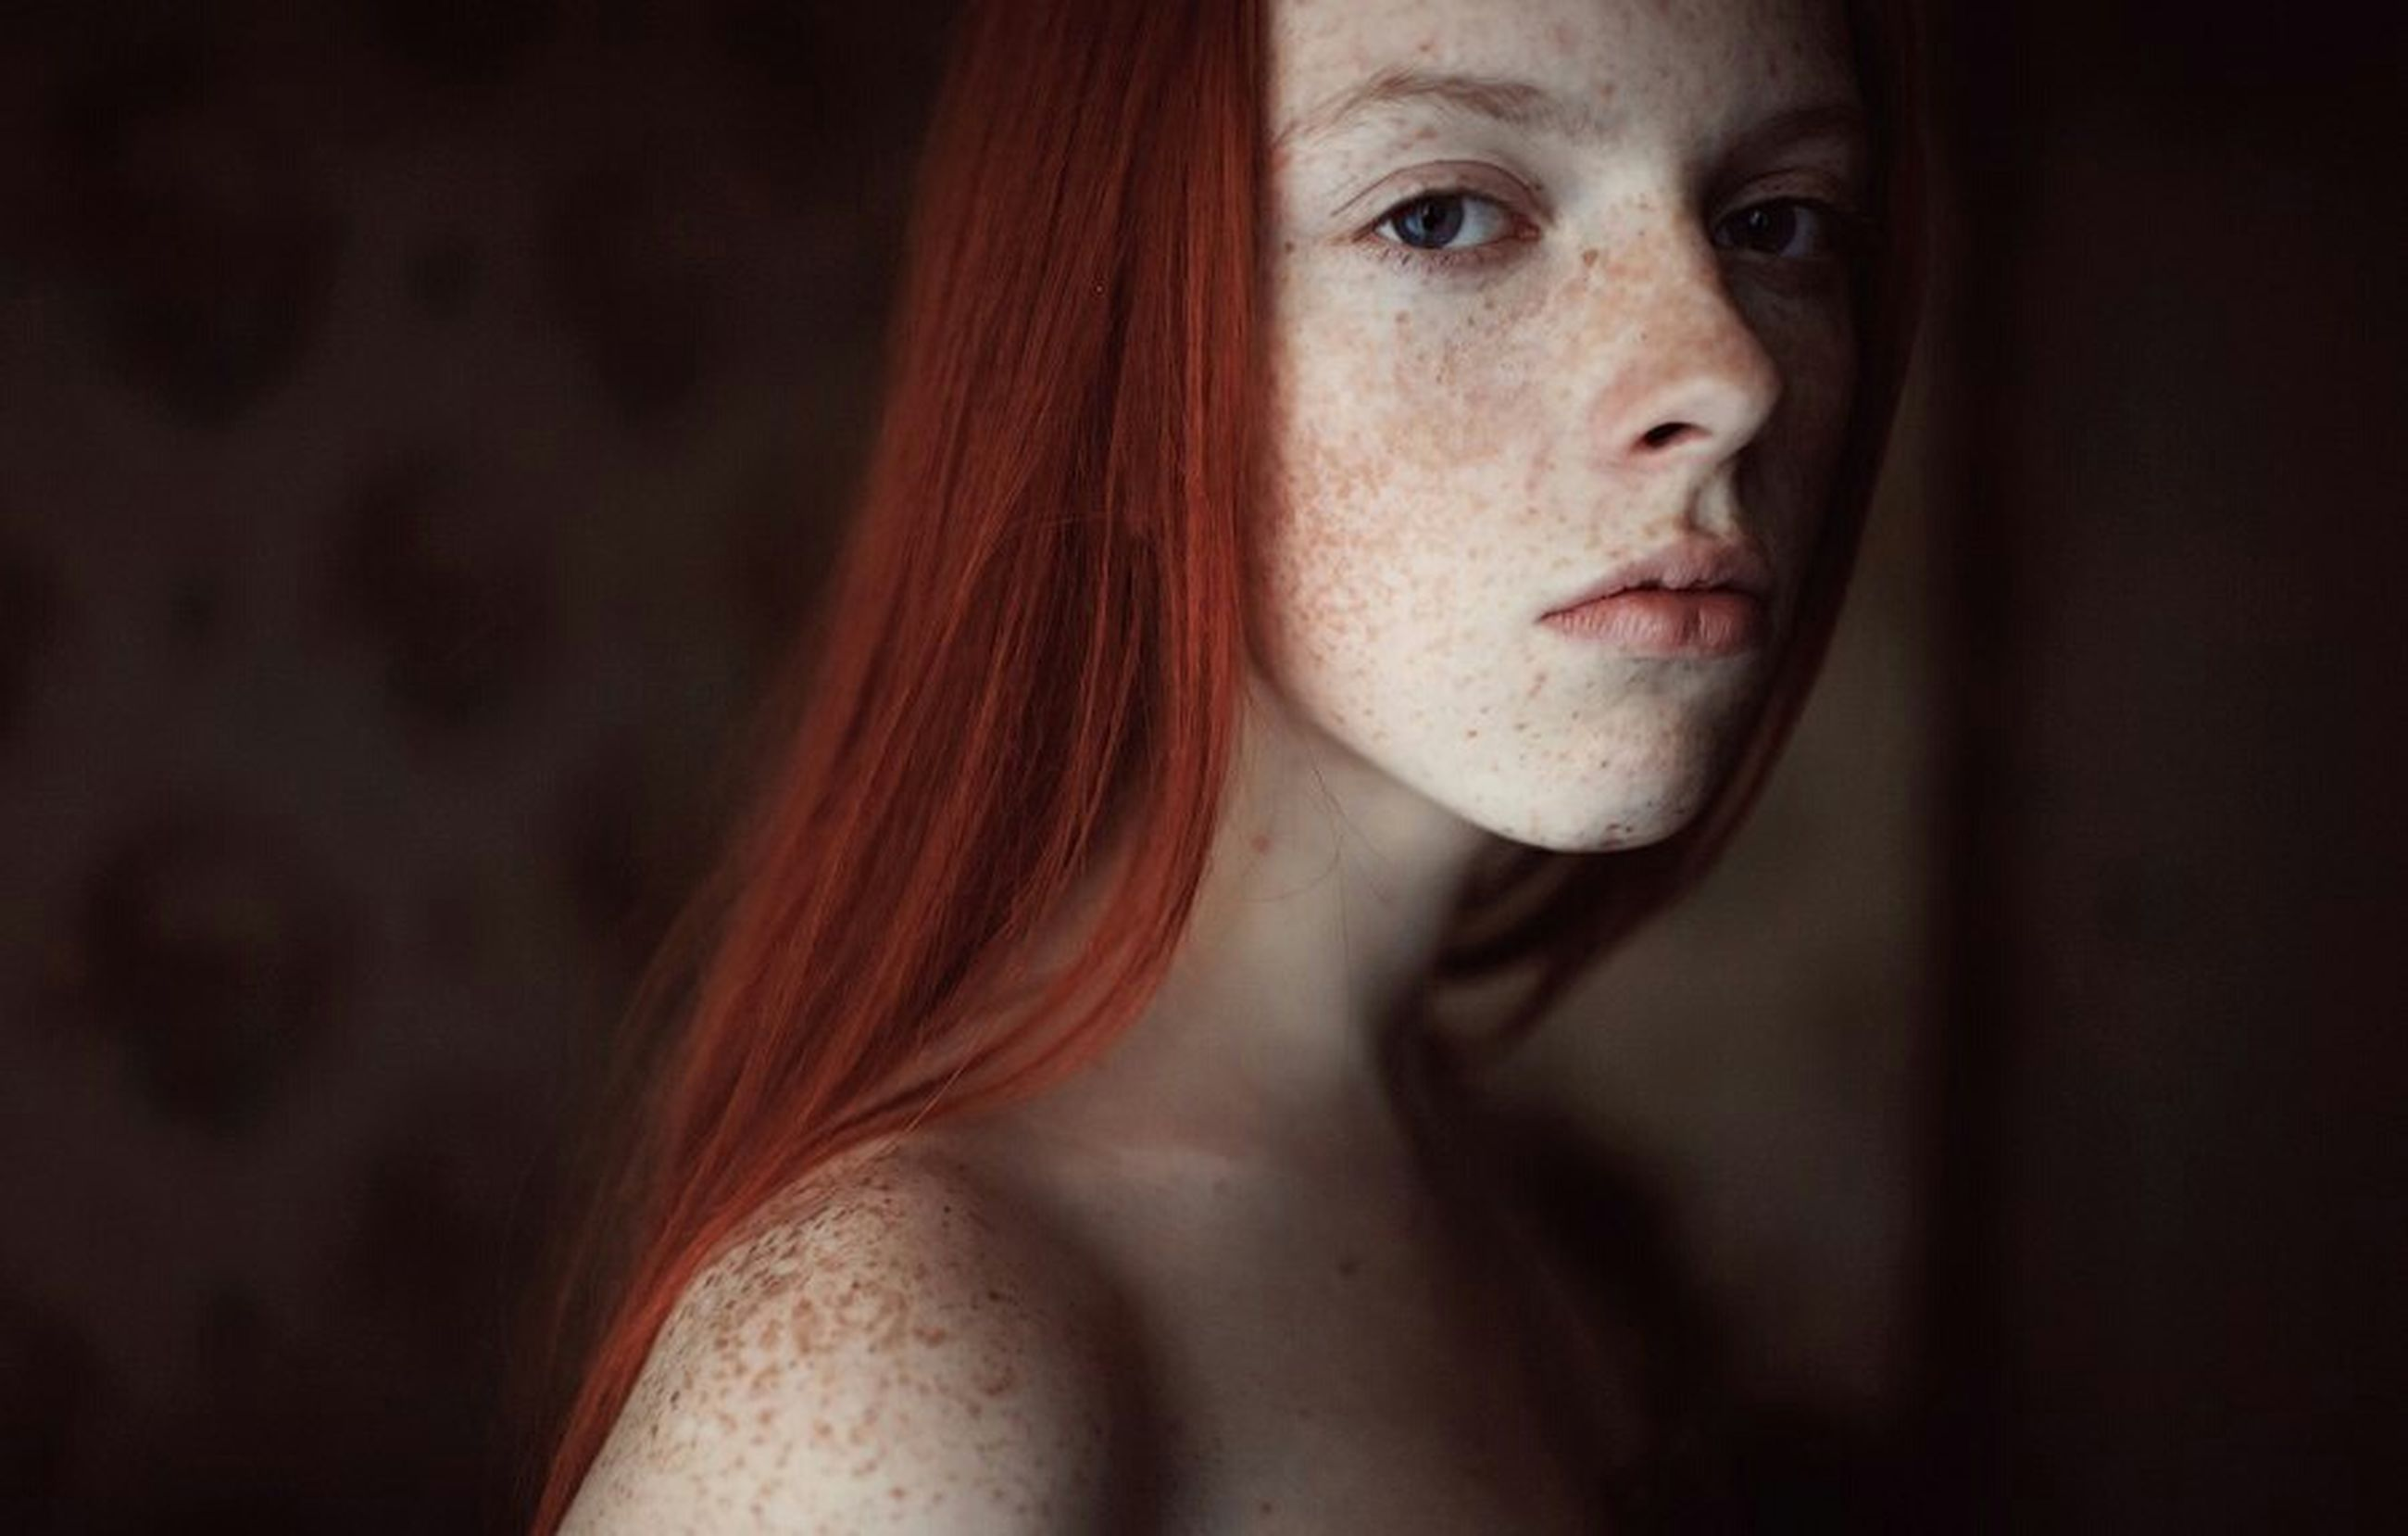 young adult, headshot, young women, person, lifestyles, portrait, indoors, contemplation, looking at camera, close-up, front view, serious, leisure activity, human face, head and shoulders, long hair